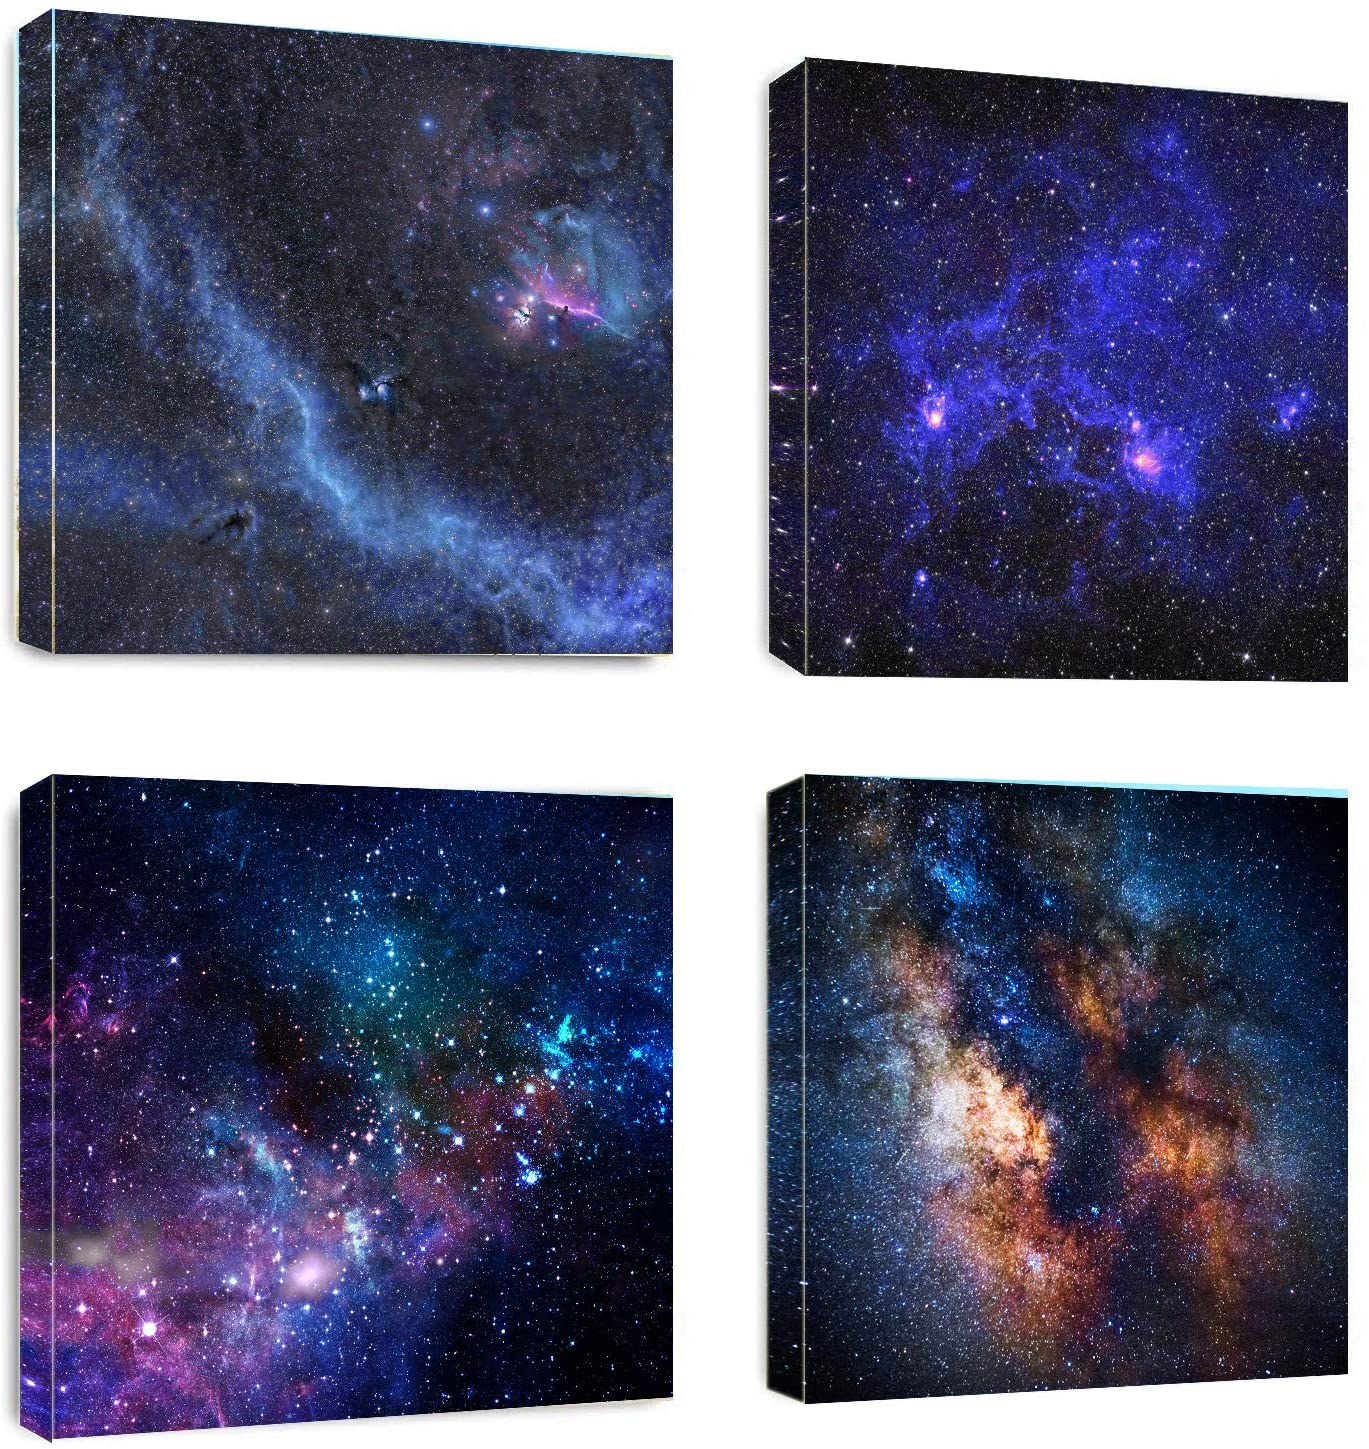 Galaxy Wall Art Canvas Prints - Abstract Fantasy Nebula Galaxy Picture Painting - Modern Space Wall Artwork Framed for Home Boys Kids Room Wall Decor -12x12inchx4pcs